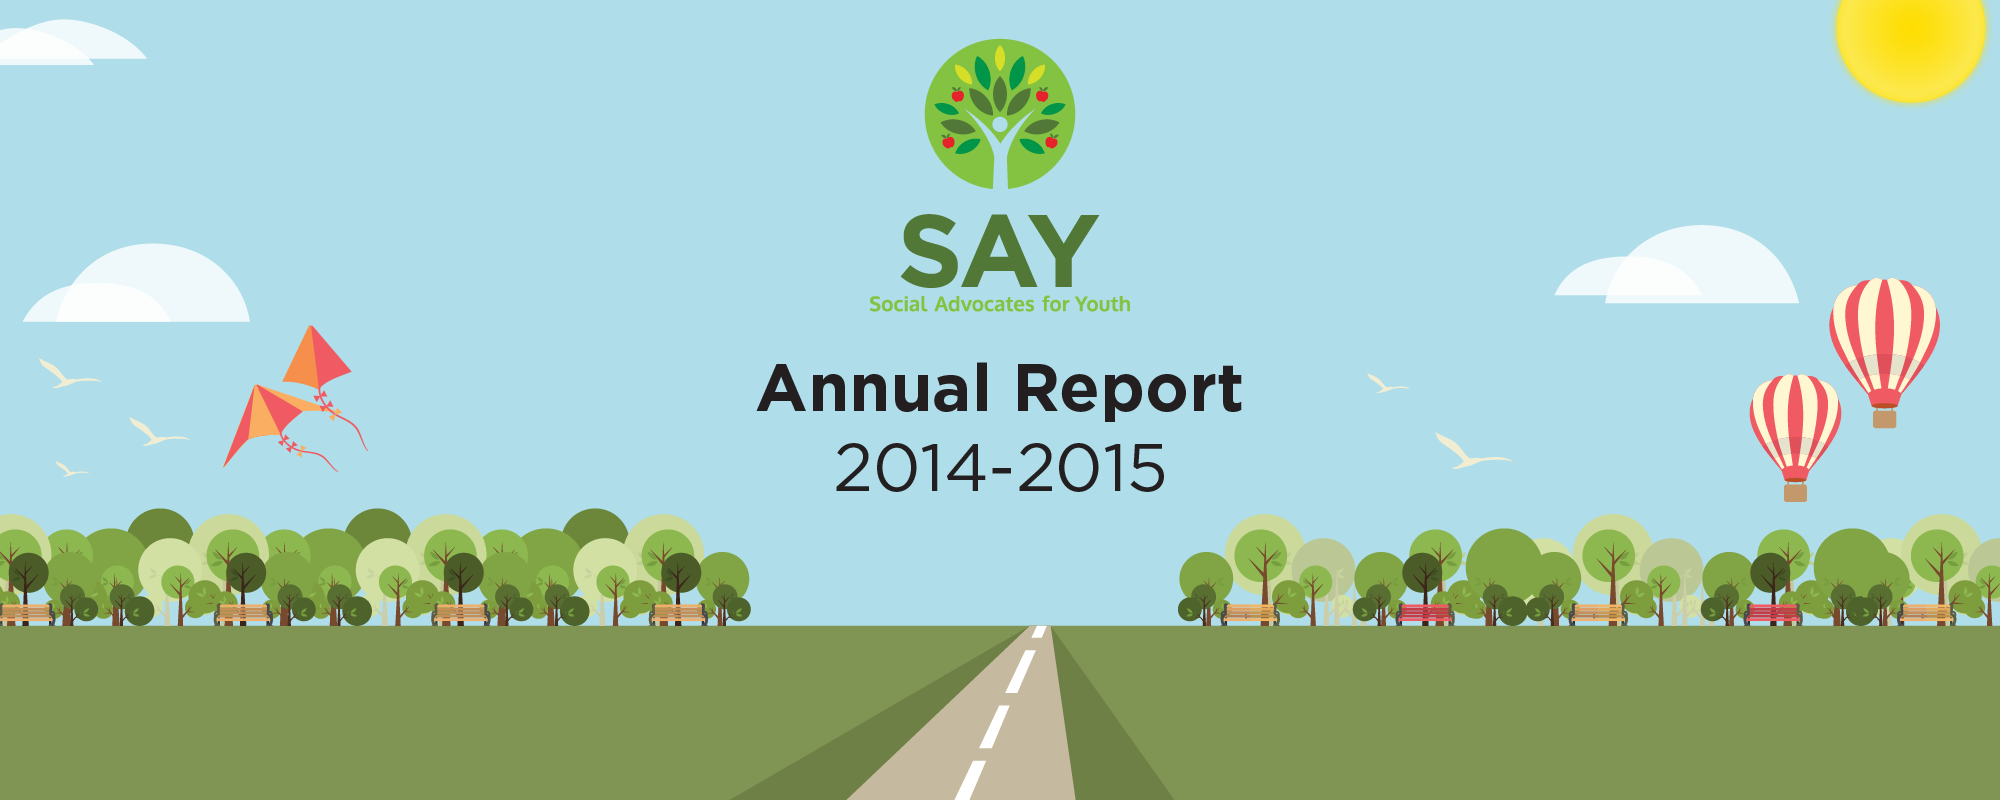 Social Advocates For Youth | Annual Report 2014-2015